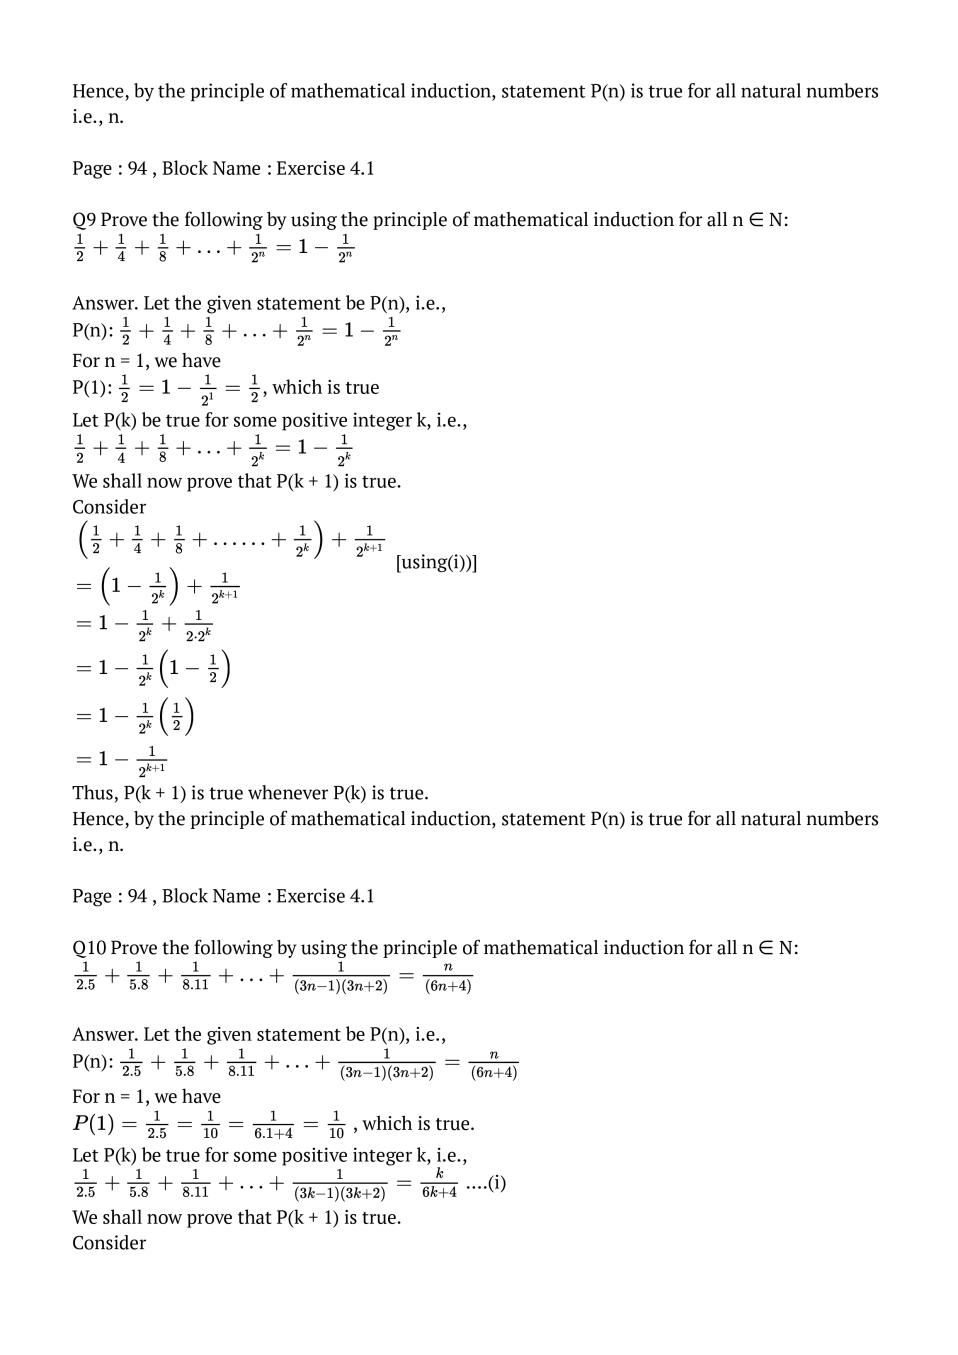 NCERT Solutions for Class 11 Maths Chapter 4 Principle of